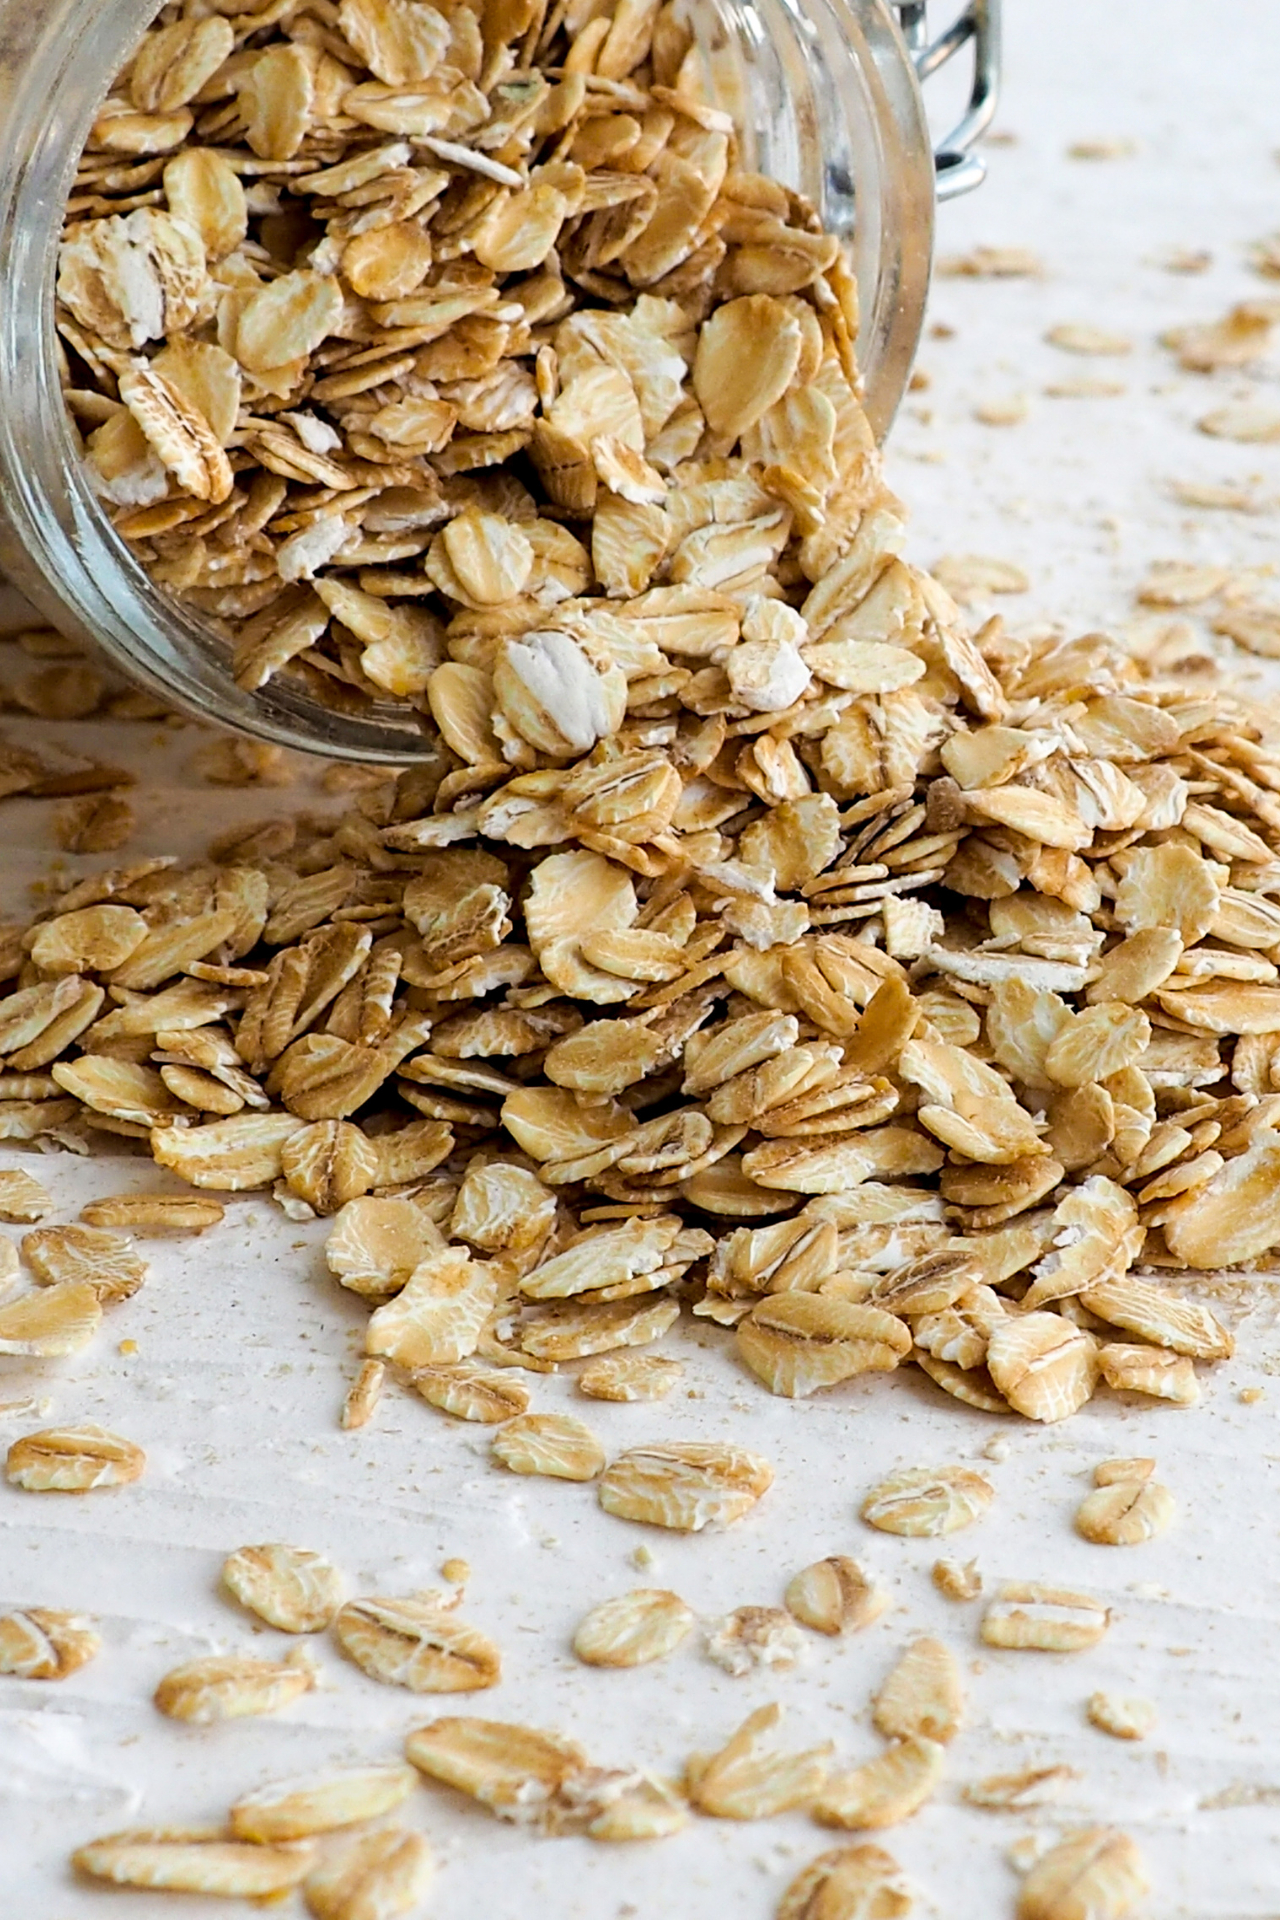 5 unique ways to use oats